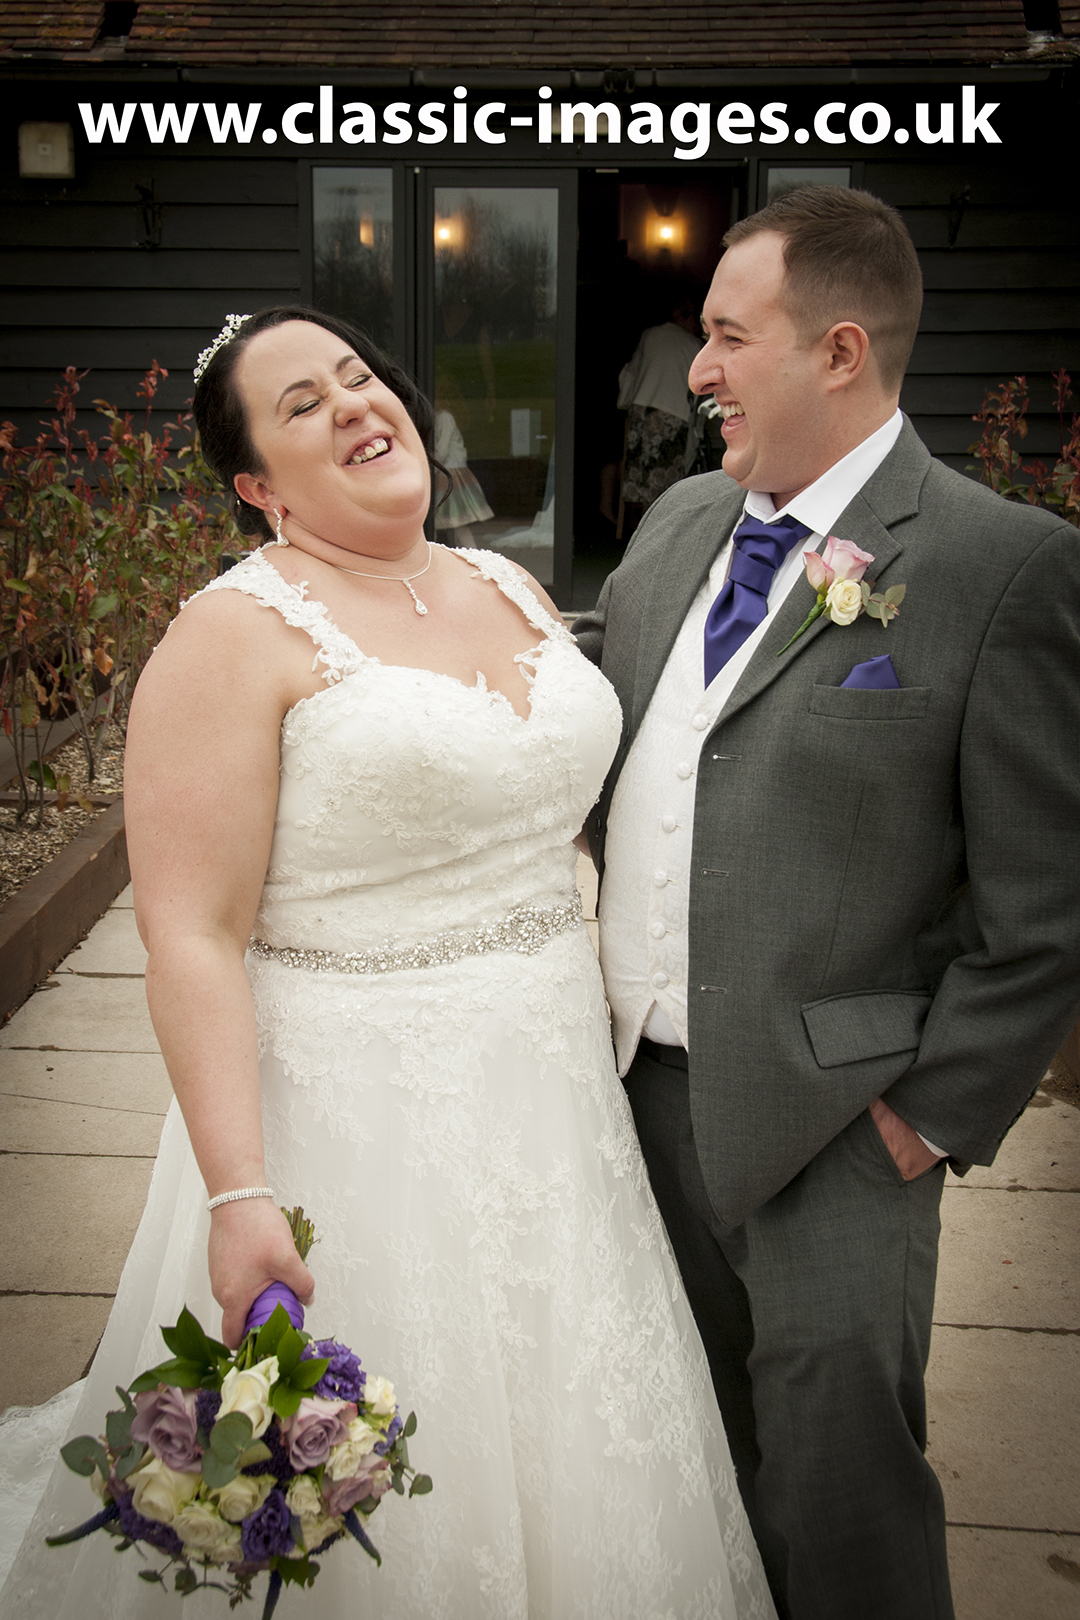 classic-images-wedding-photography-sunbury-golf